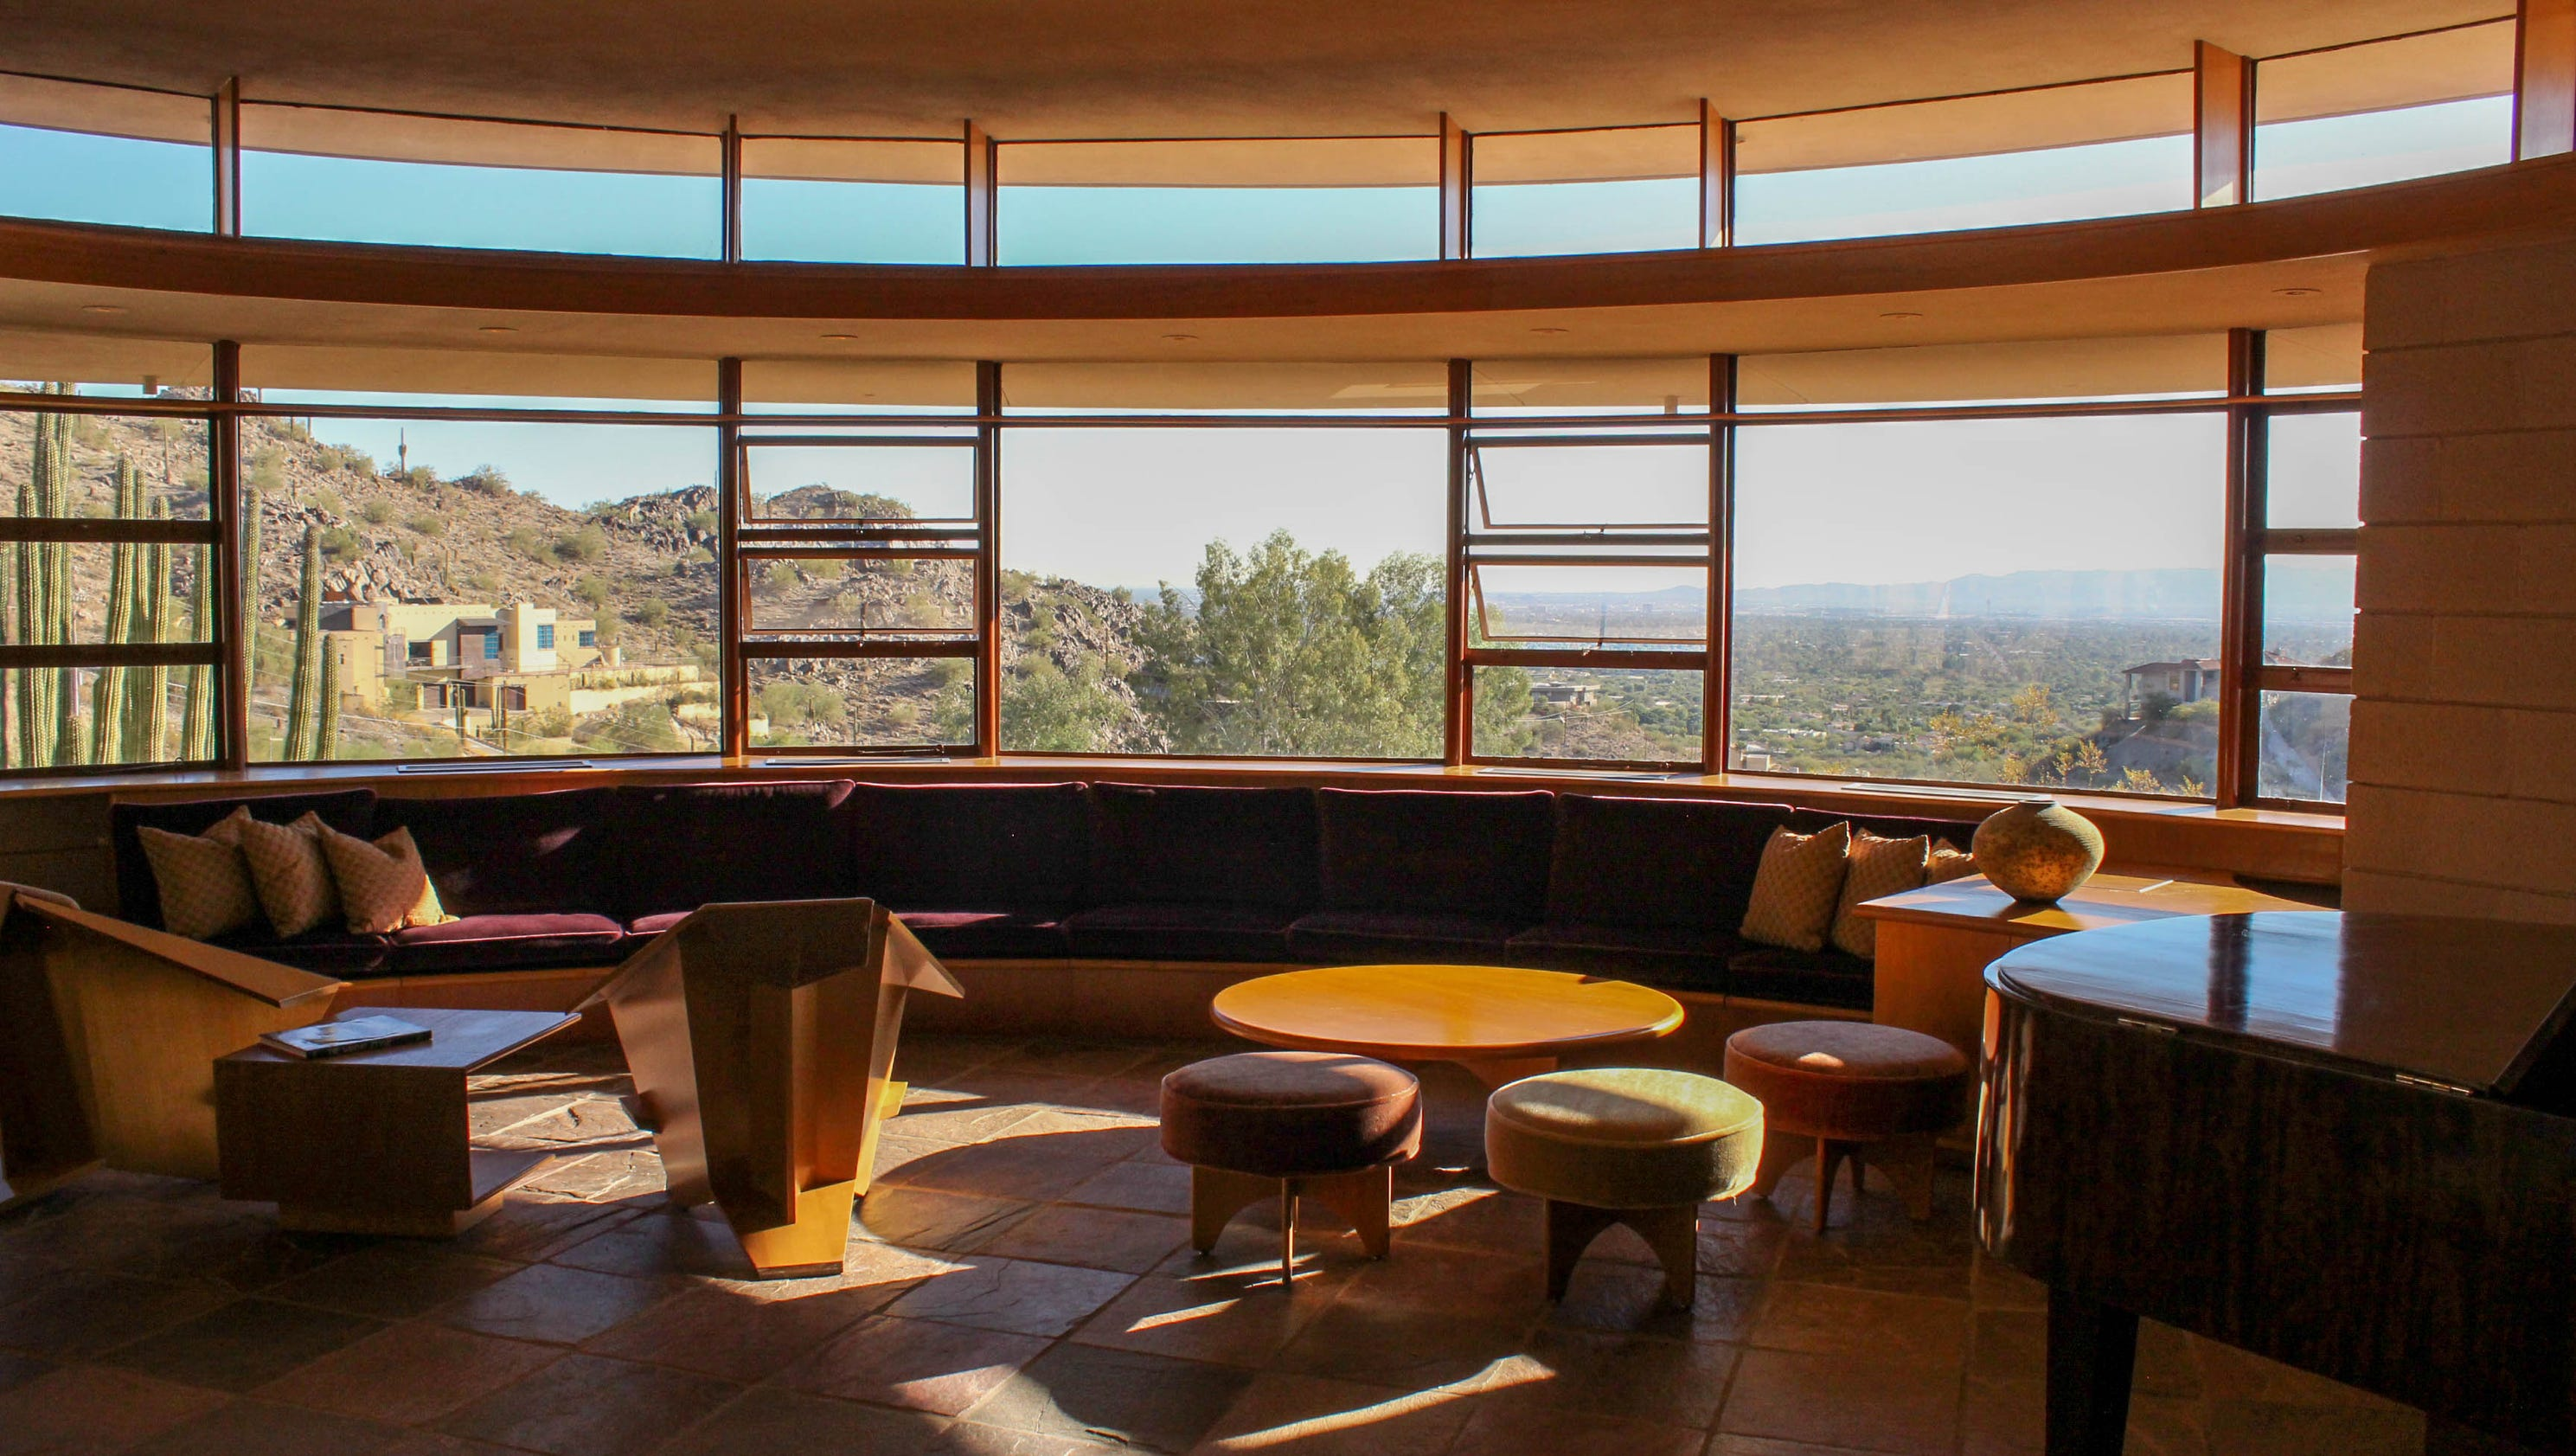 Frank lloyd wright 39 s last designed house for sale in for Today s interiors phoenix